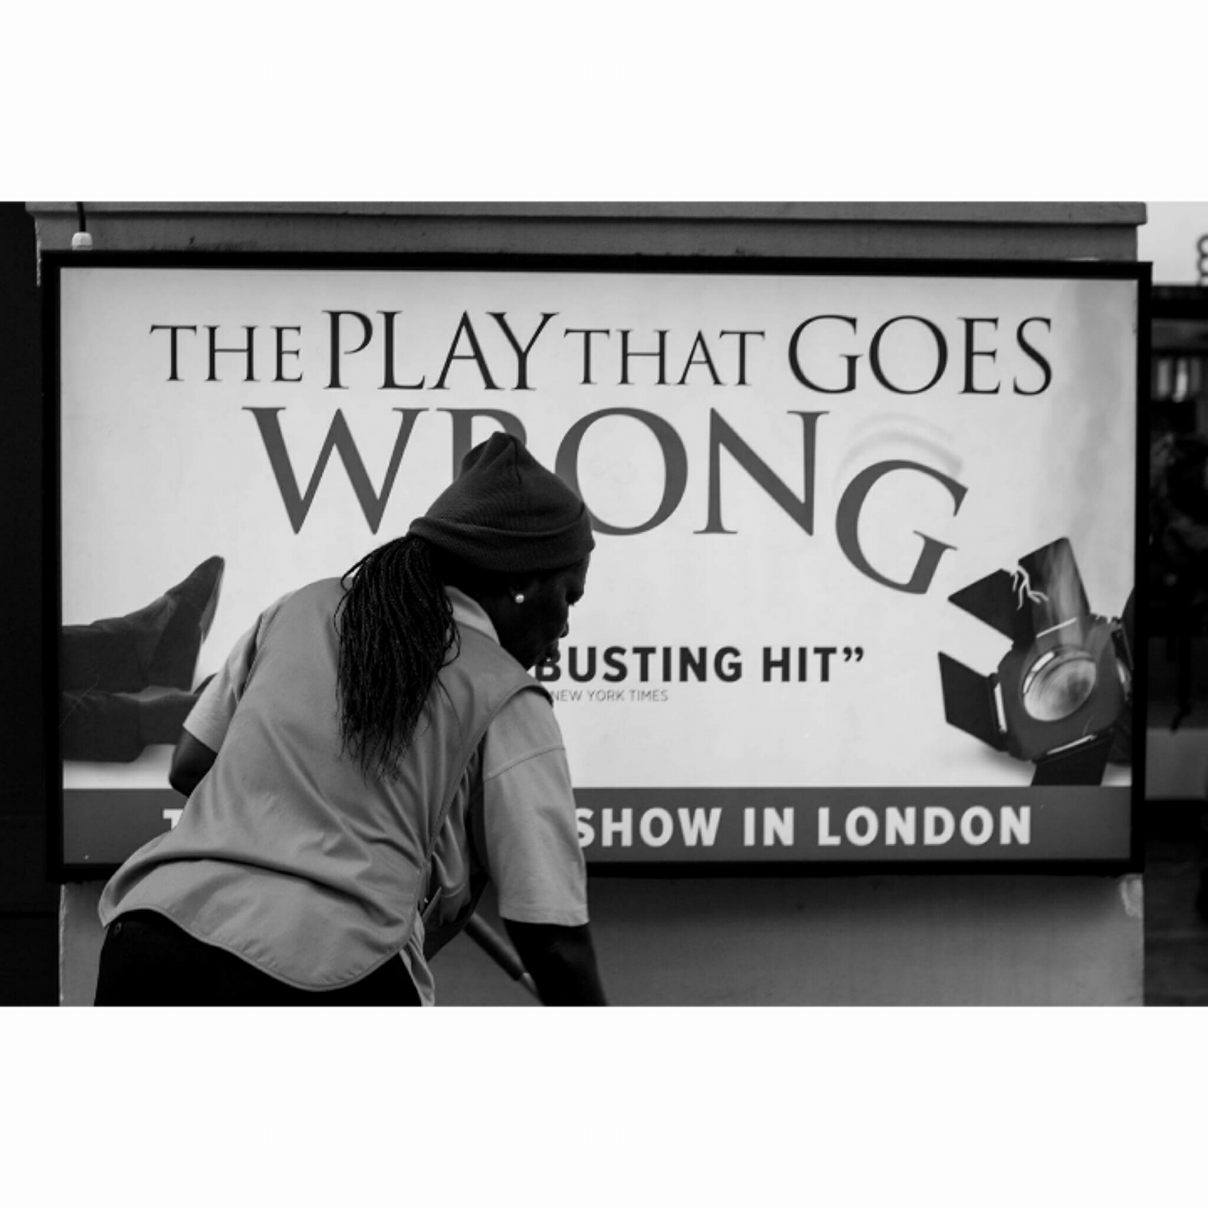 The play that goes wrong,London - January 2017